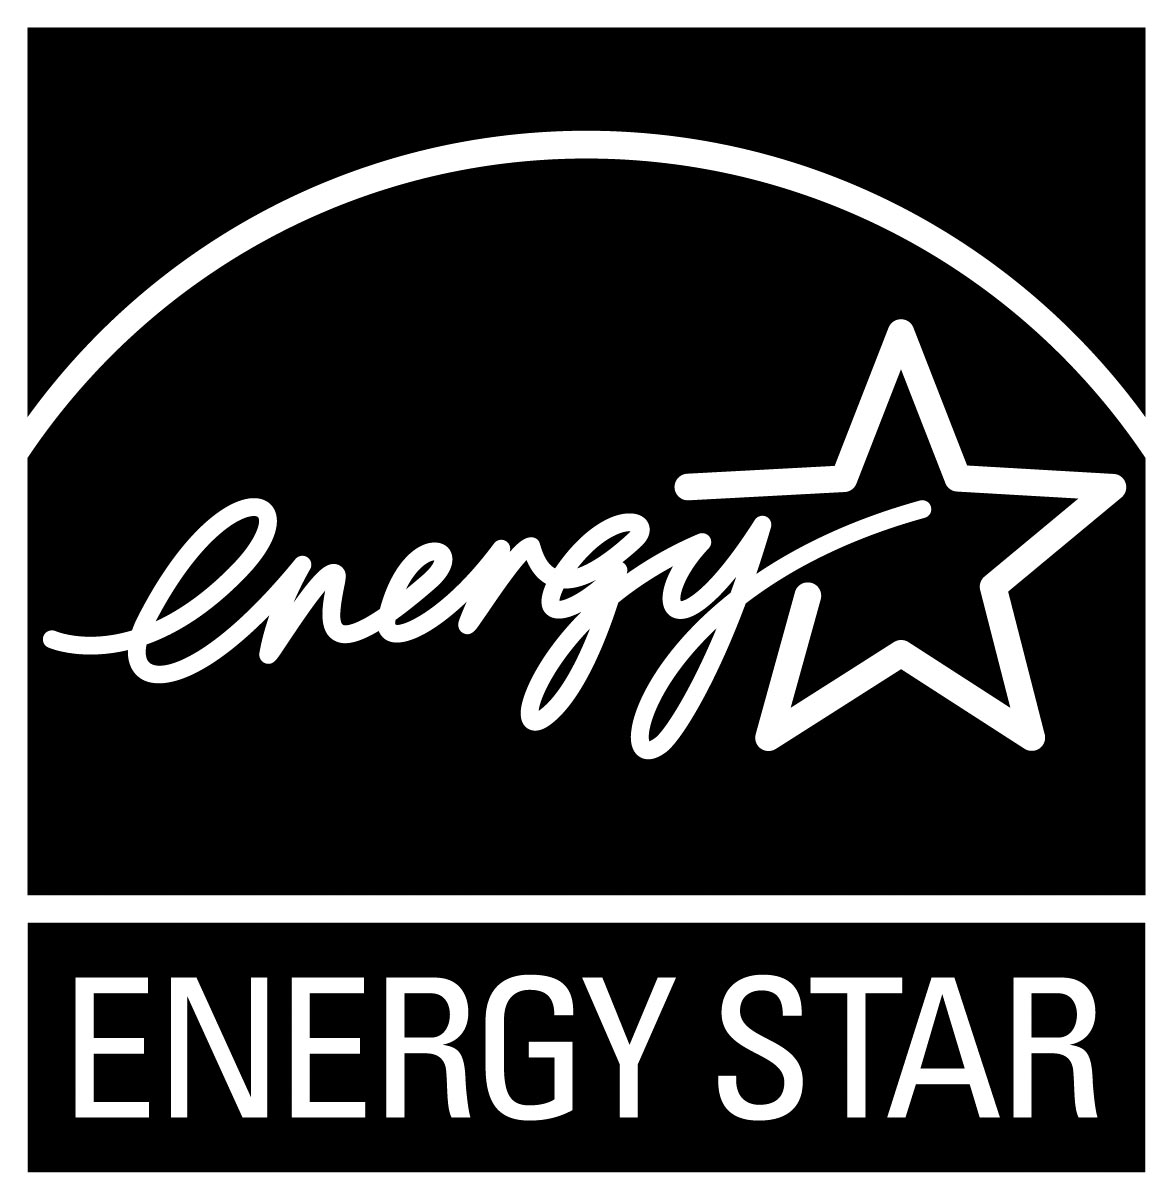 ENERGY STAR symbol - noir